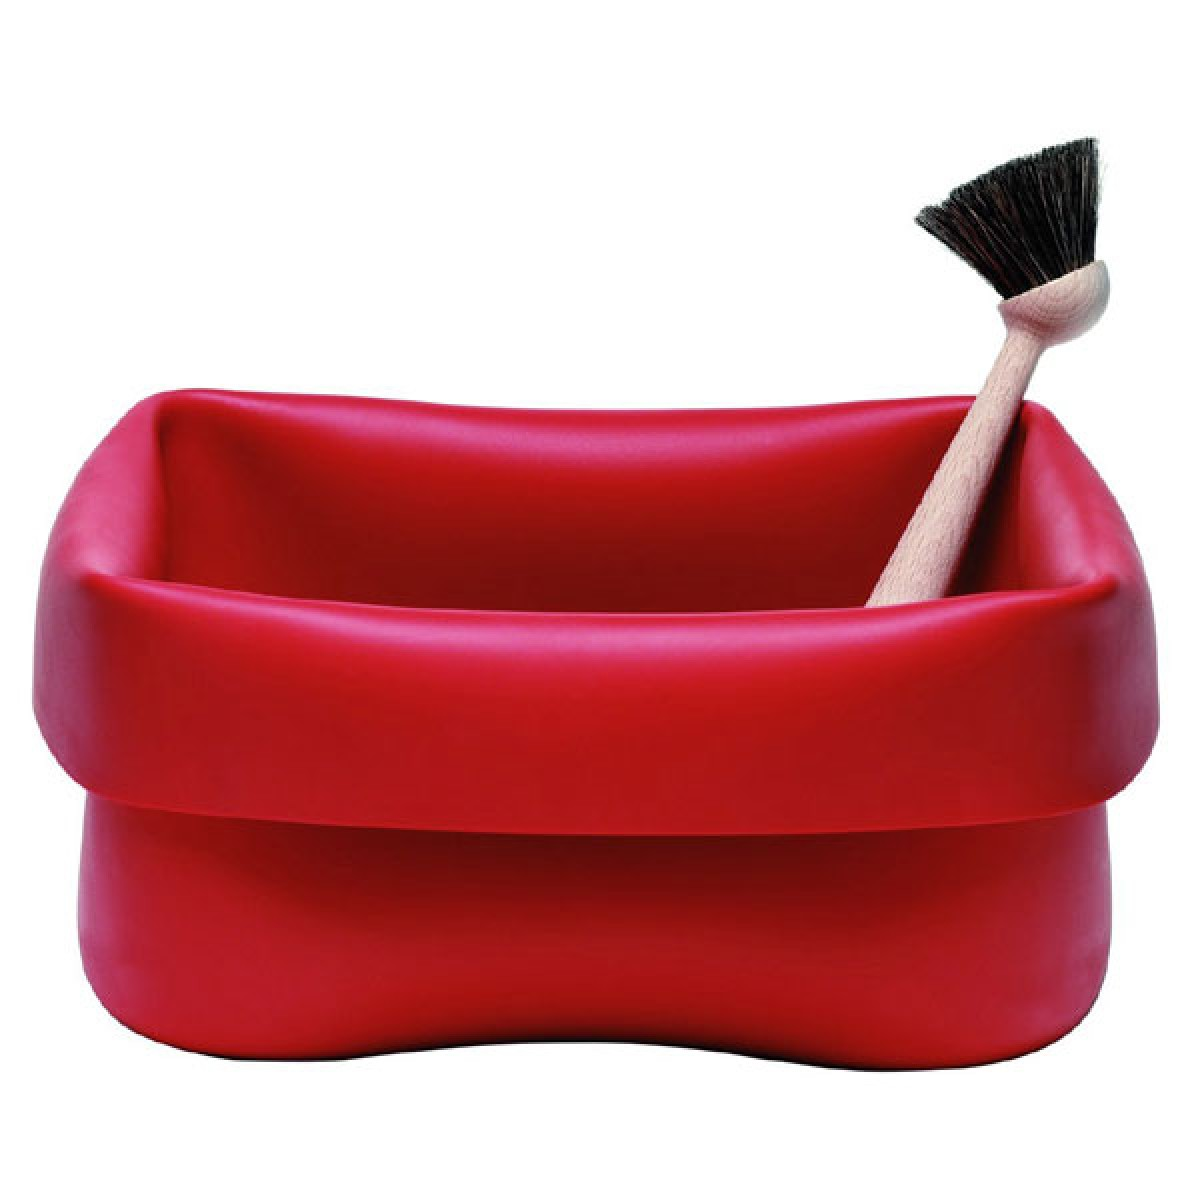 red rubber washing up bowl